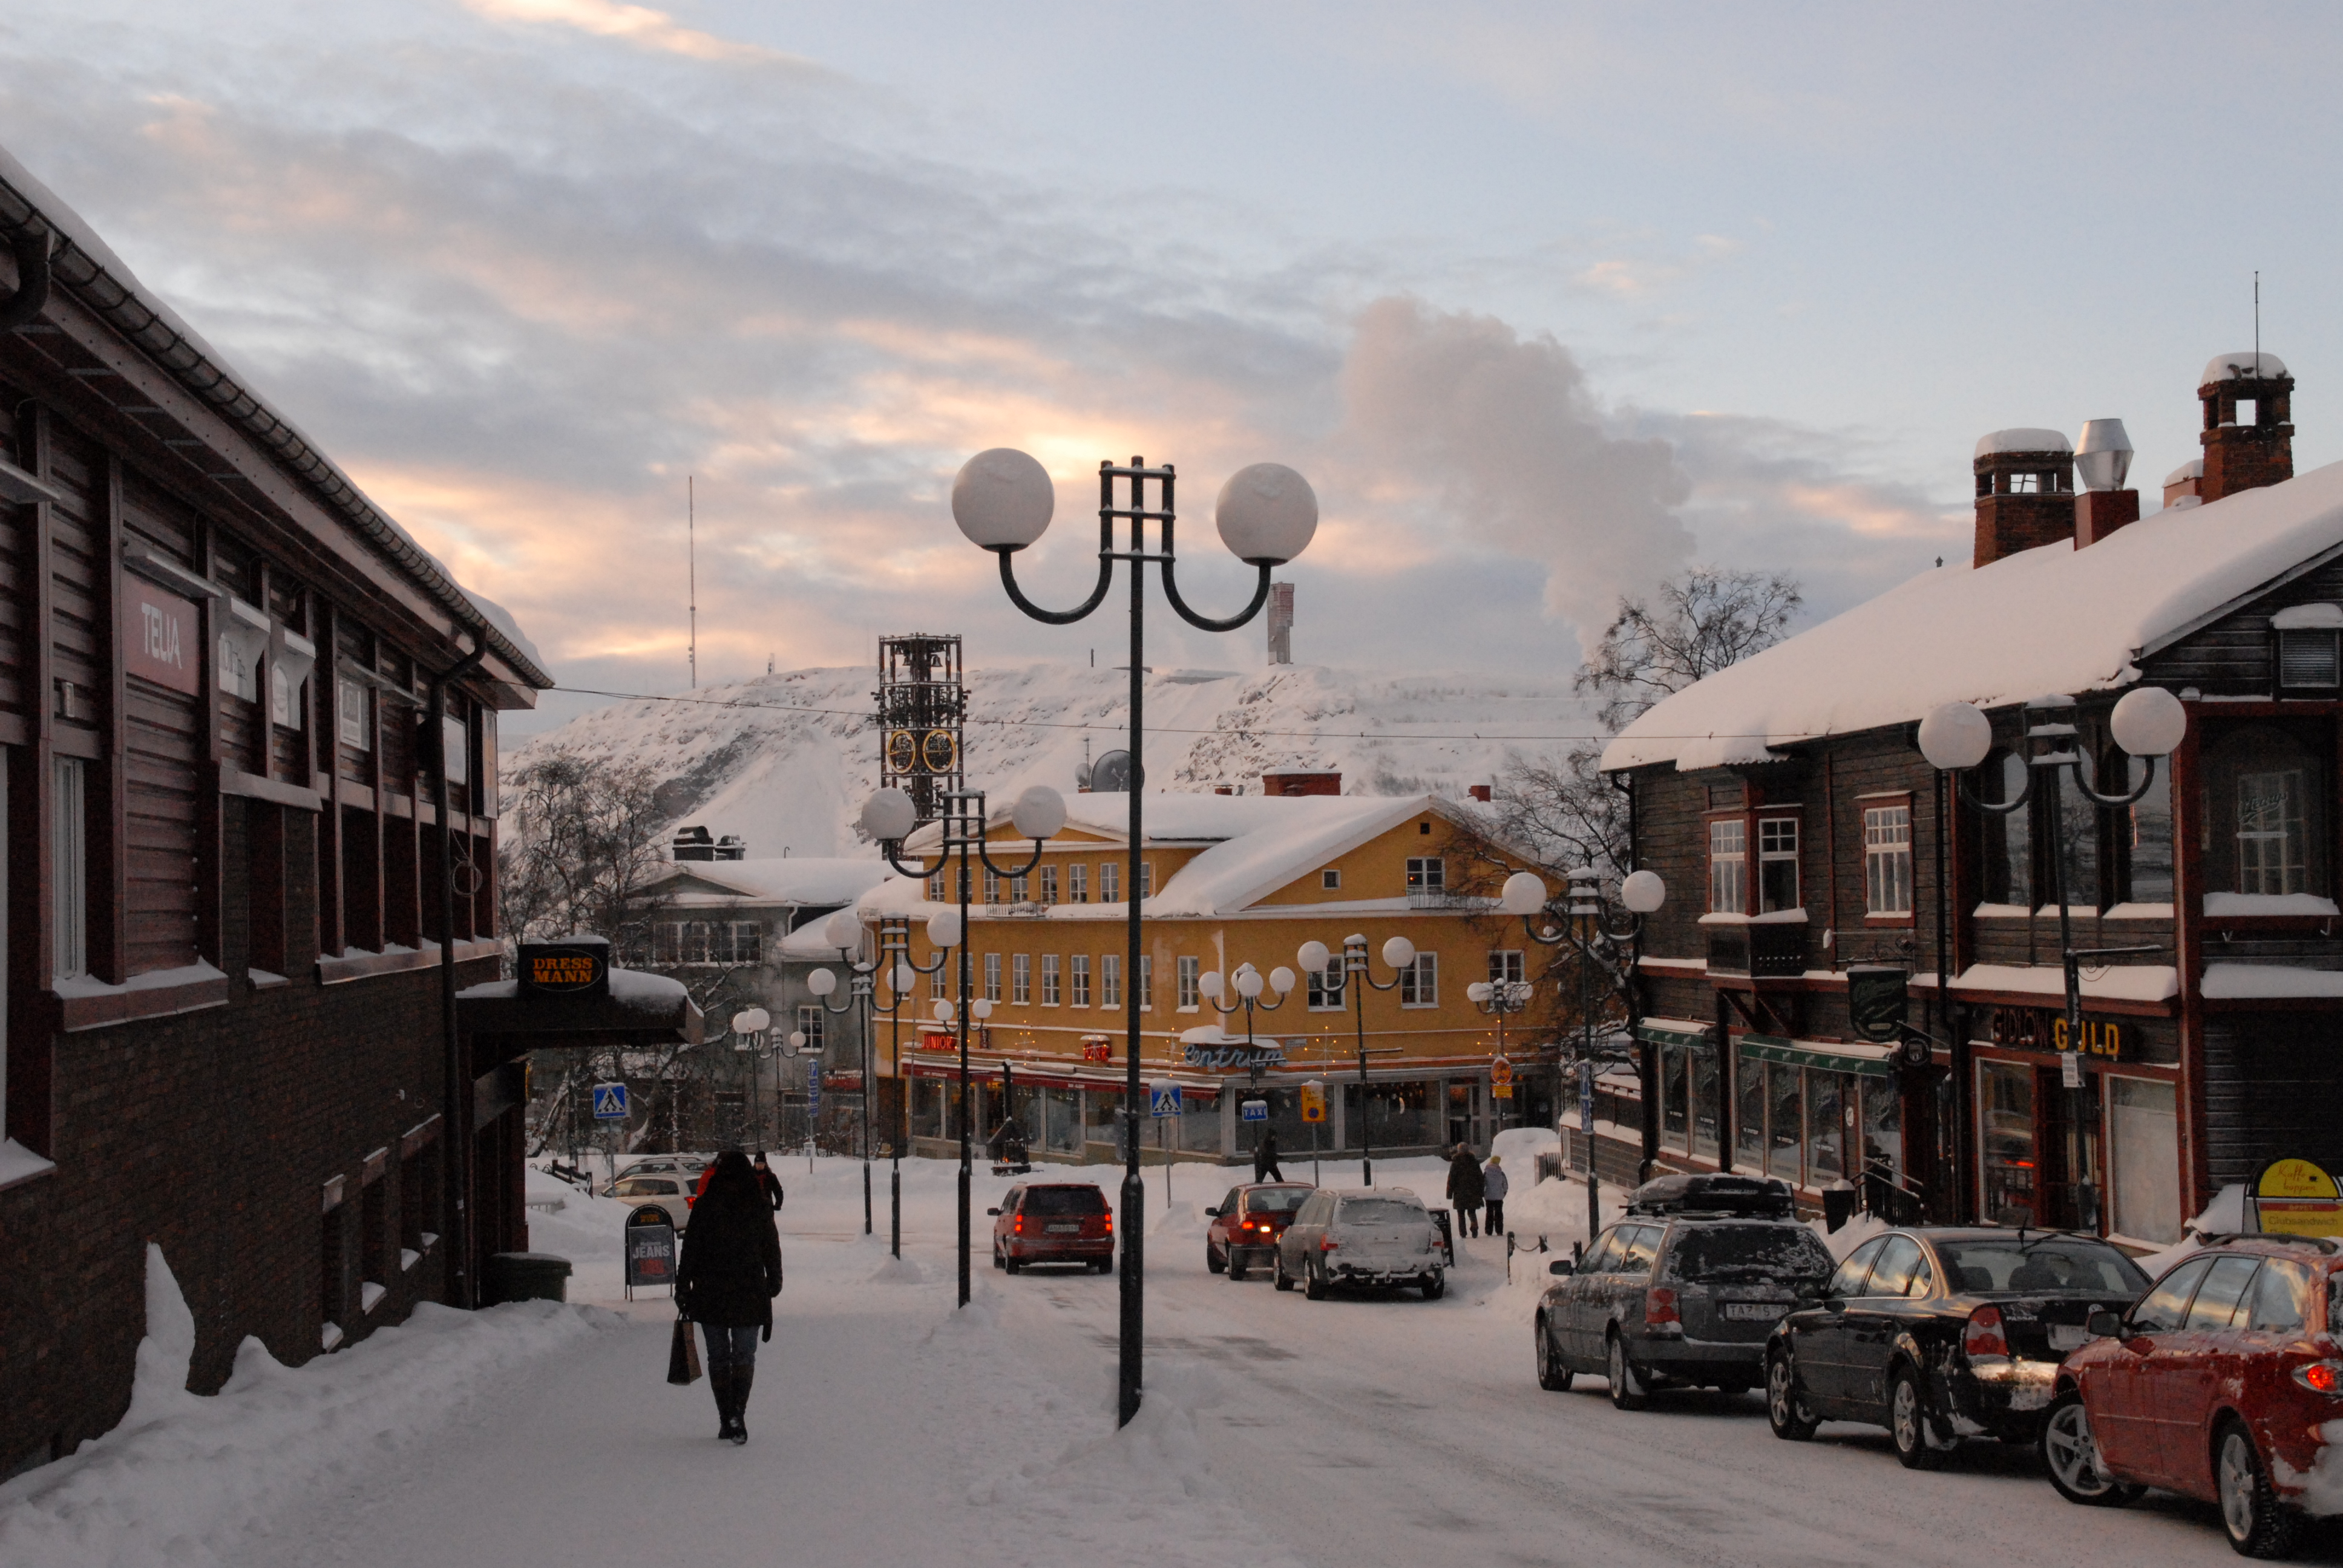 No need to worry about finding your hostel in kiruna if you re with